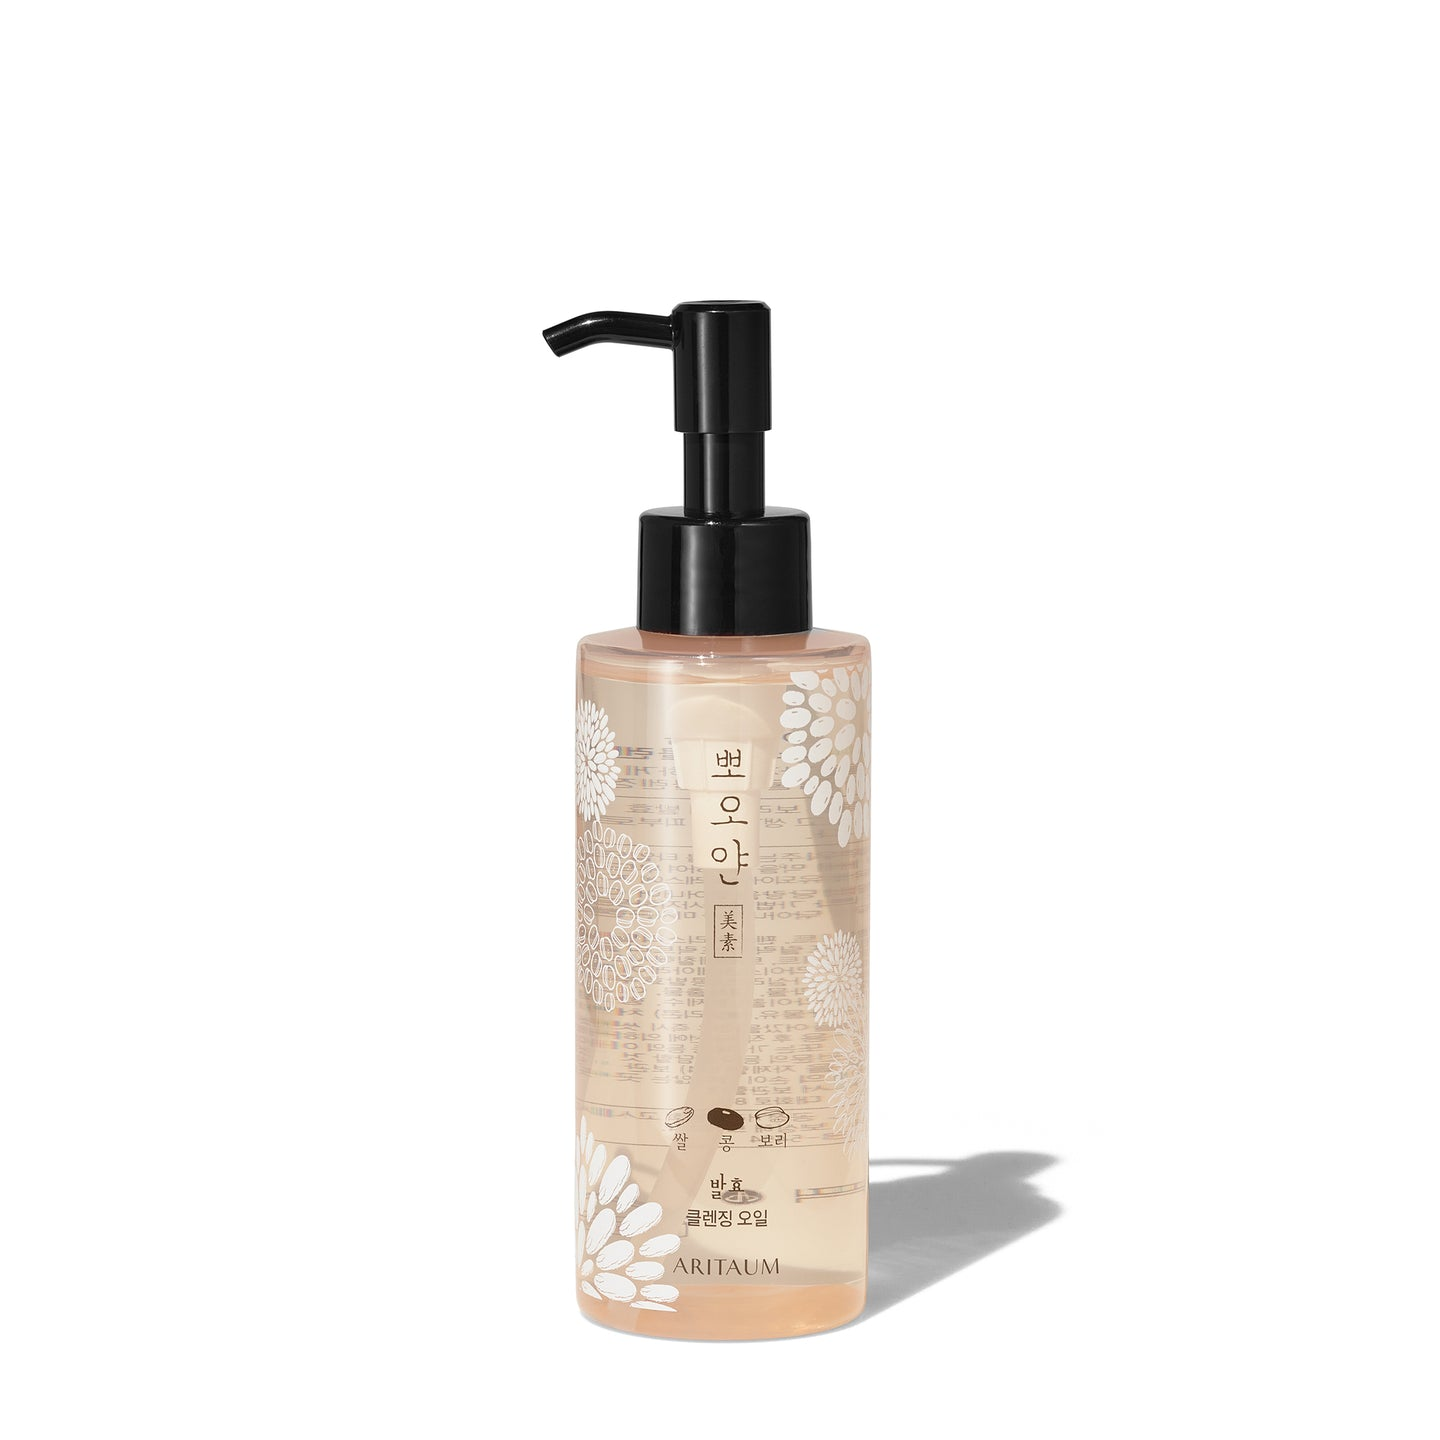 Aritaum<br>Cleansing Oil